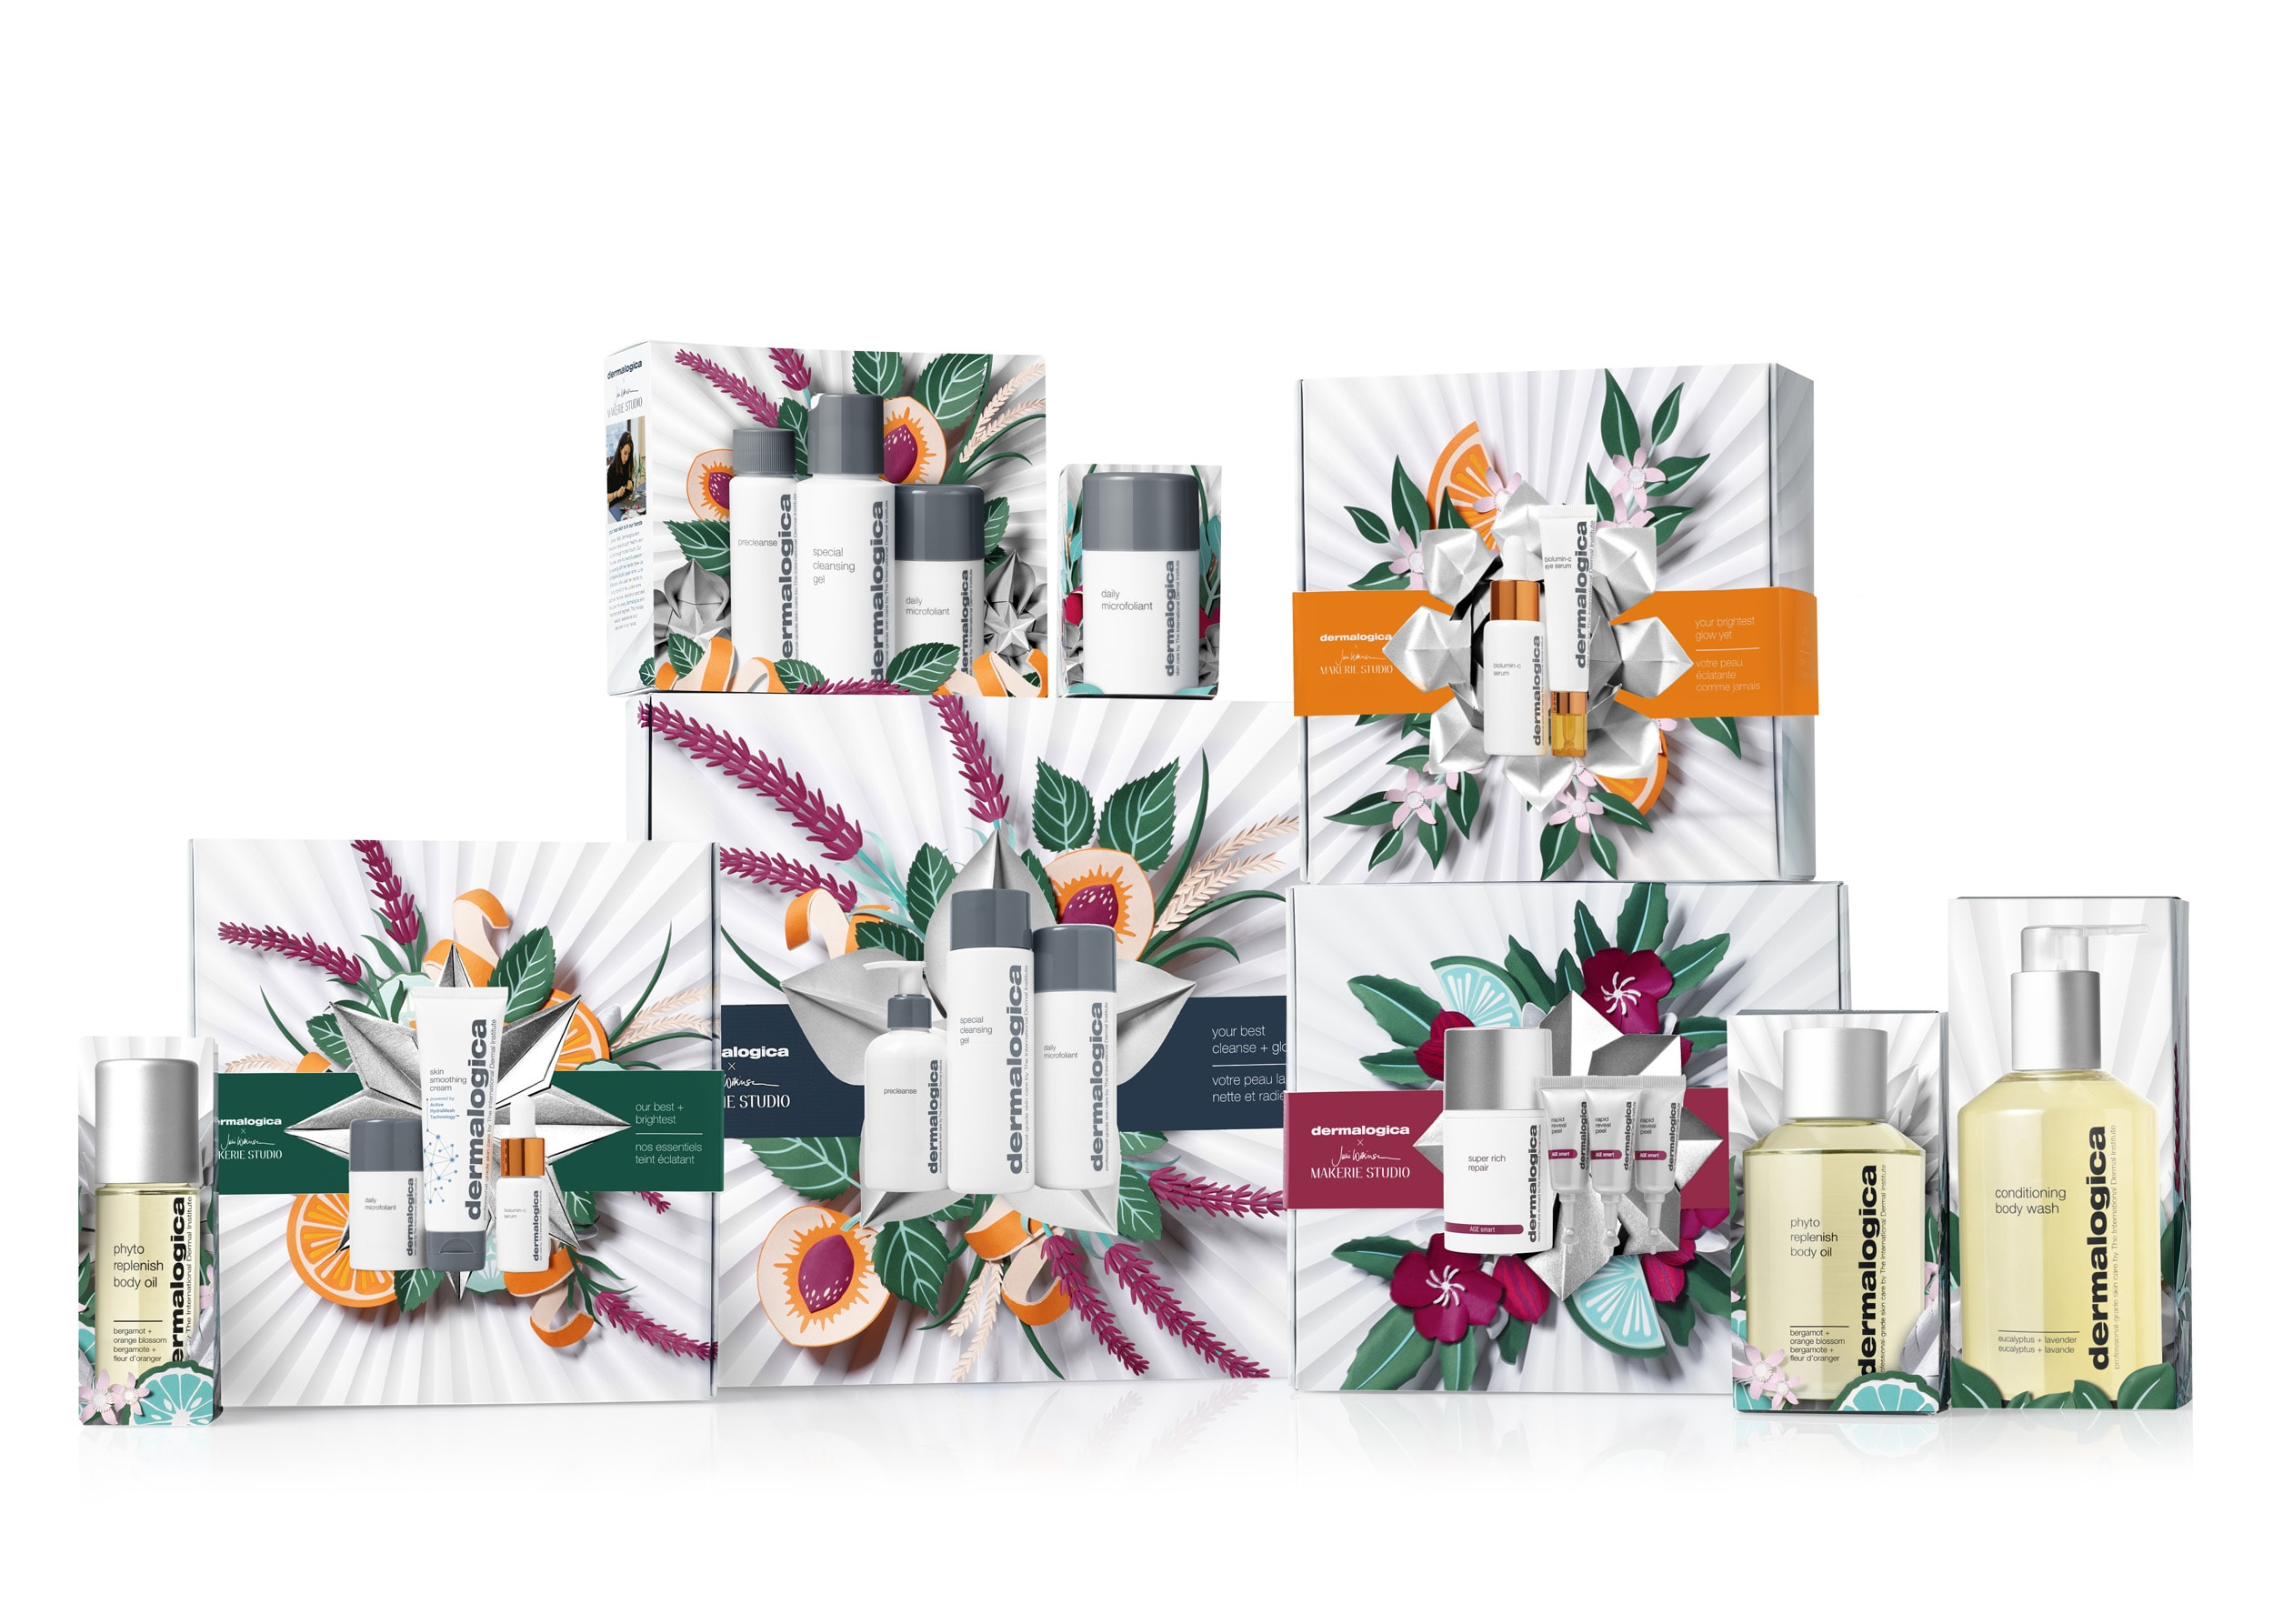 Catharina Caprino – Dermalogica 2020 Holiday Packaging